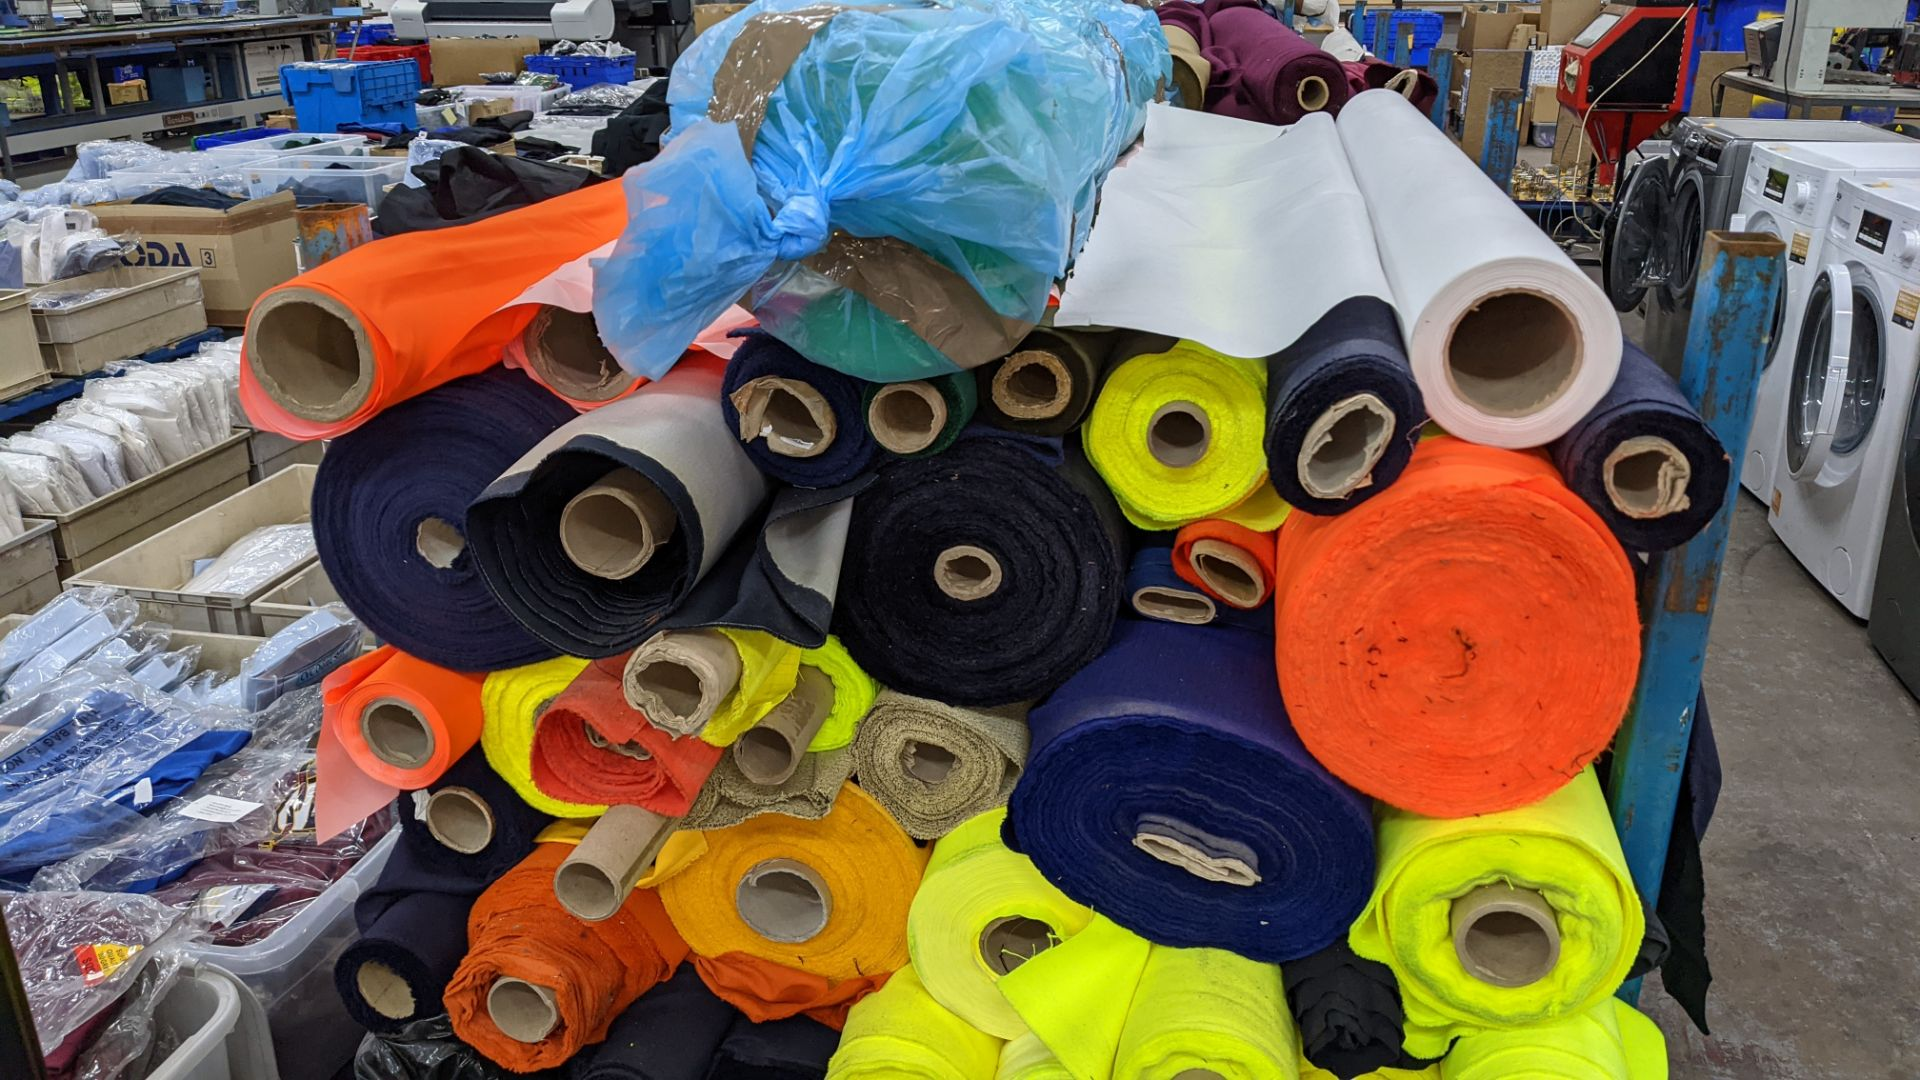 The contents of a large stillage of fabric including quantity of high visibility cloth. Please note - Image 4 of 10